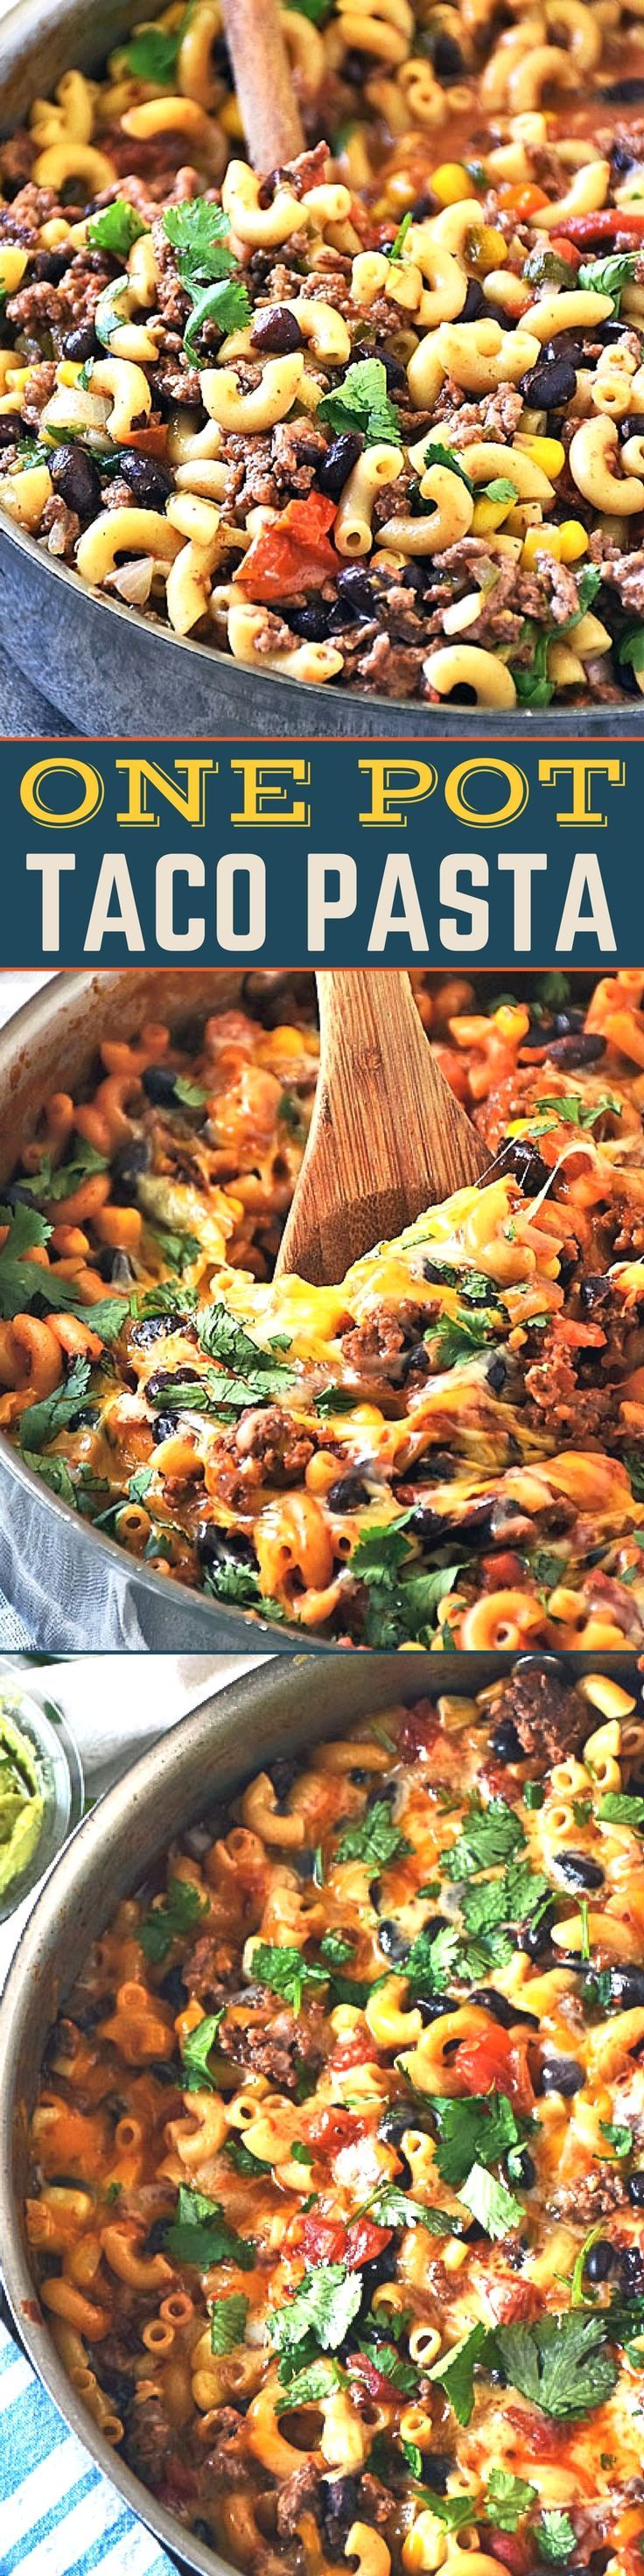 One Pot Taco Pasta Skillet is a simple meal you can cook any night of the week and the whole family will LOVE it! Loaded with all the Mexican inspired flavors of a classic taco, this cheesy One Pot Taco Pasta is comfort food goodness ready in just 30 minutes! Perfect to feed your game day crowd too! #GameDayRecipes #PastaRecipes #30MinuteMeal #EasyRecipes #MexicanFood #SundaySupper